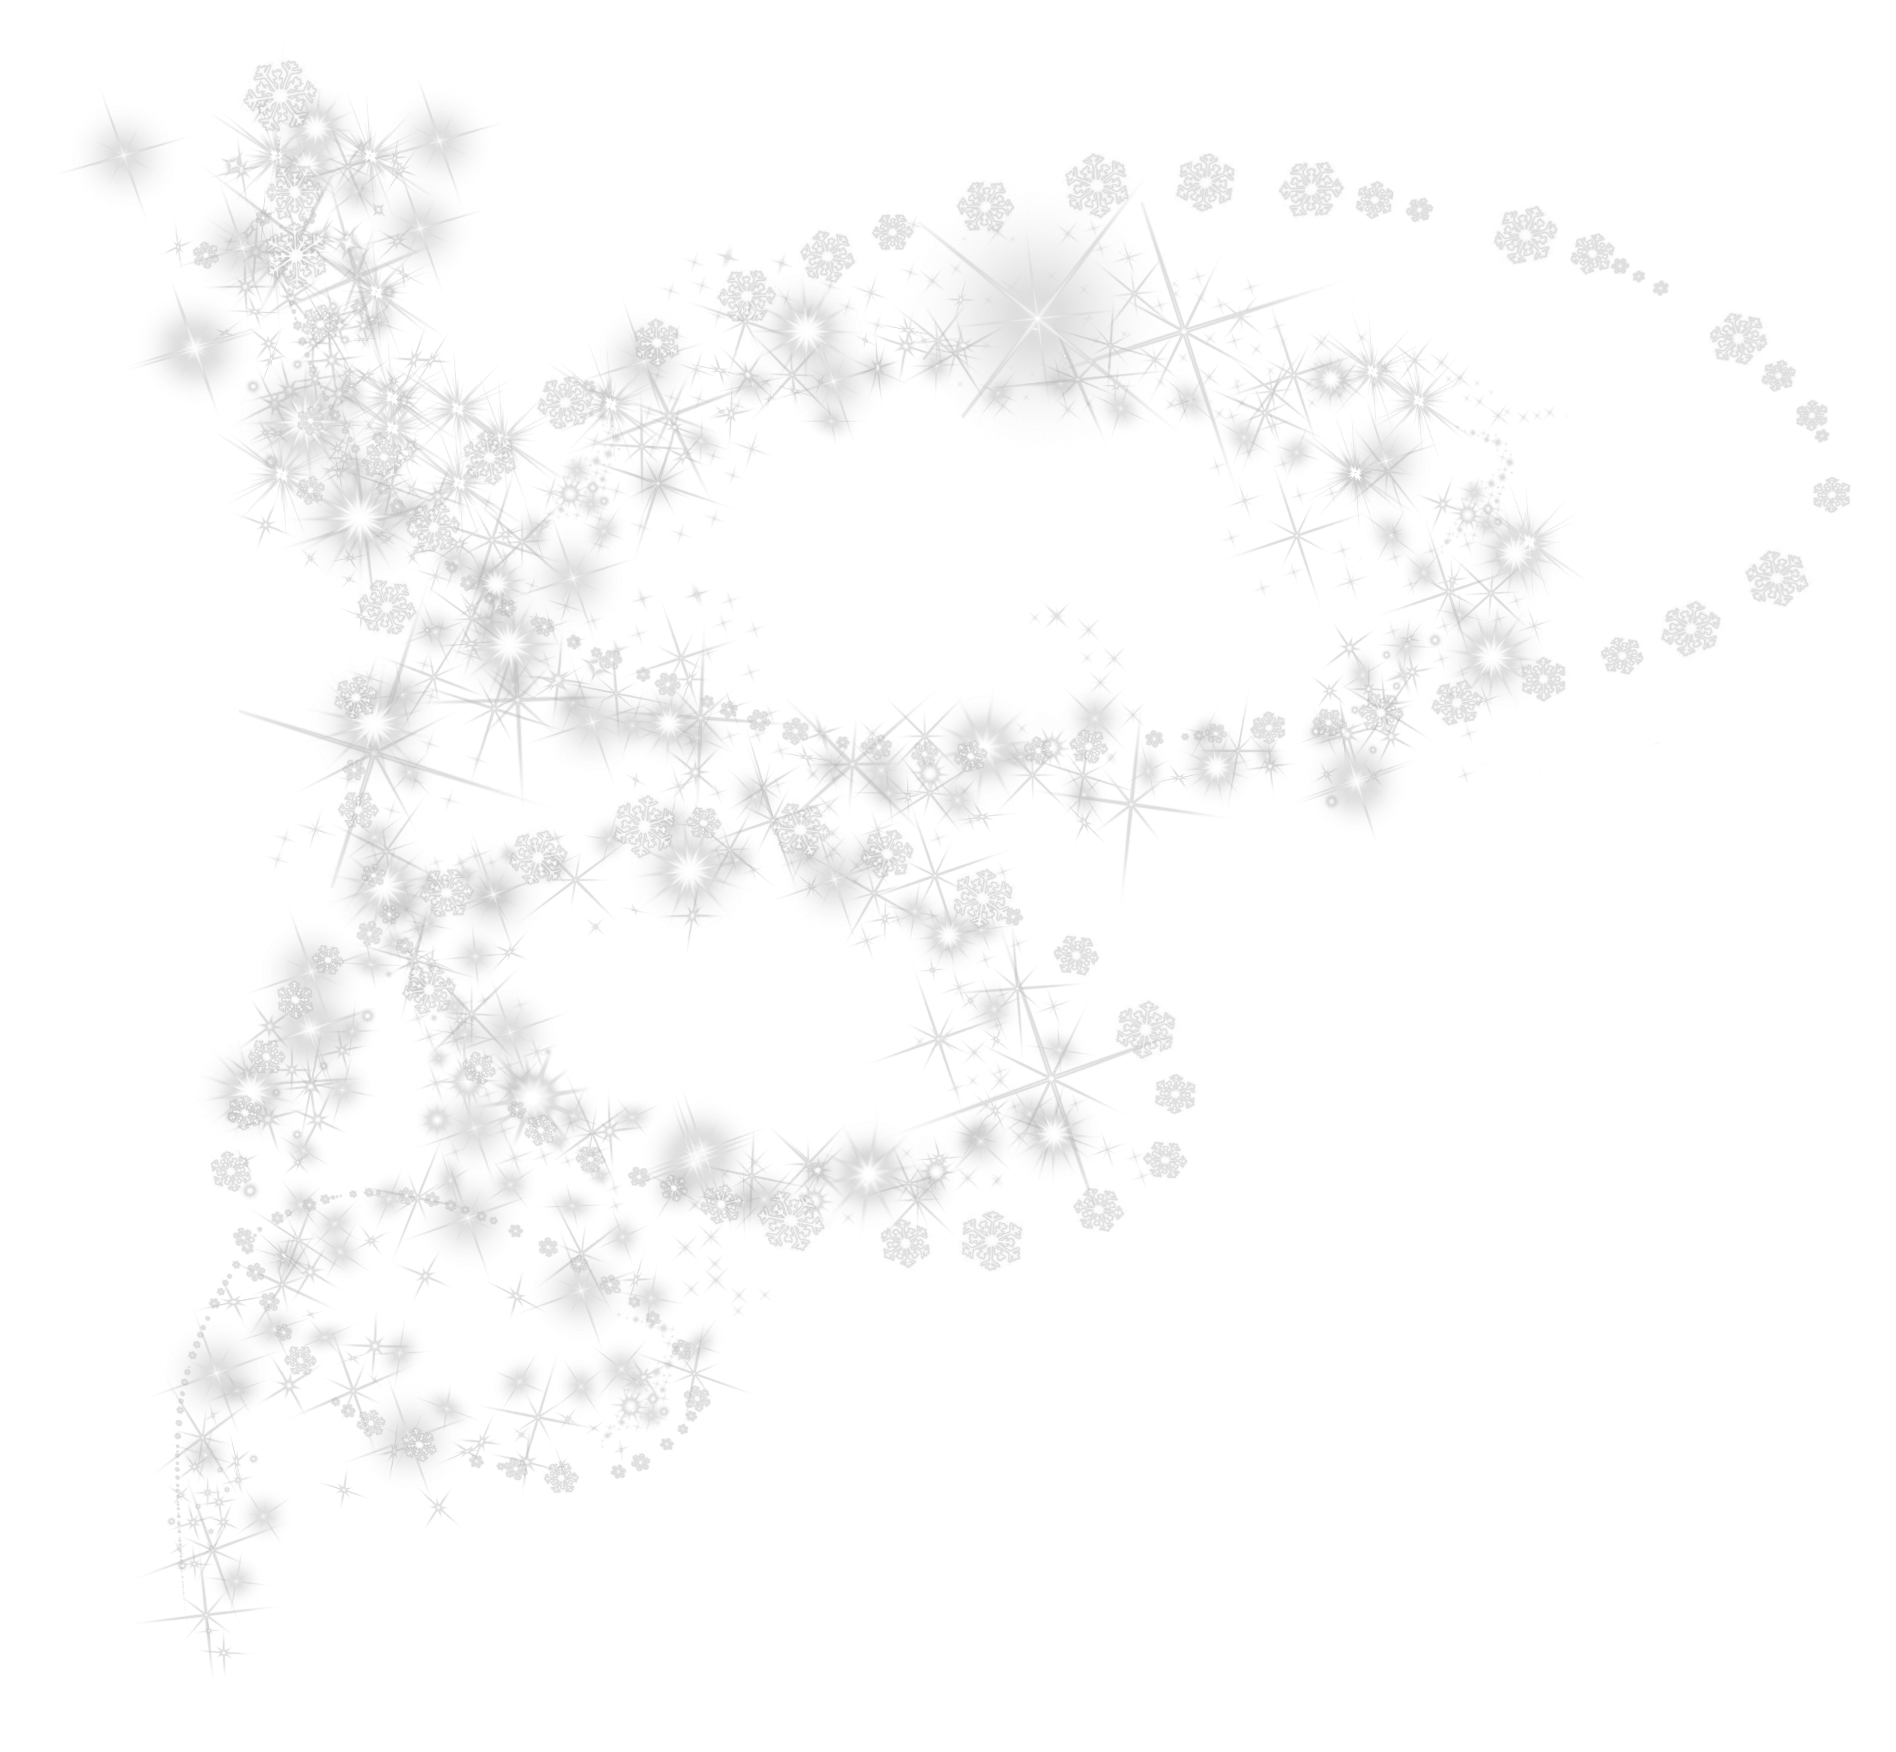 Snowflakes falling png transparent. Snowflake images pictures becuo